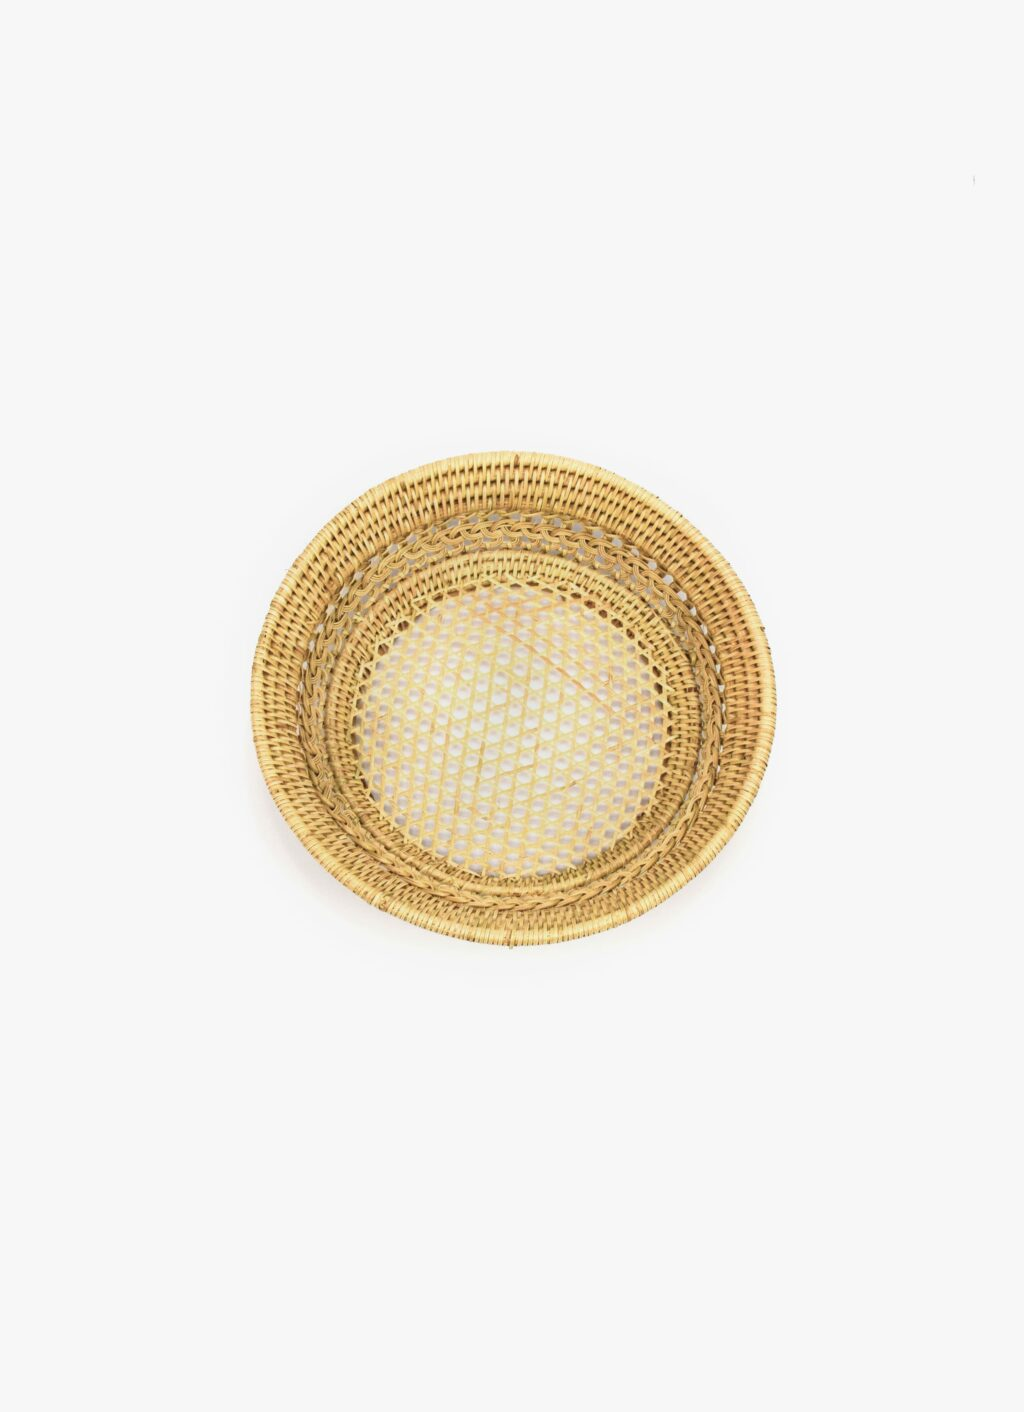 Olive and Iris - Magnolia - Handwoven Rattan Basket